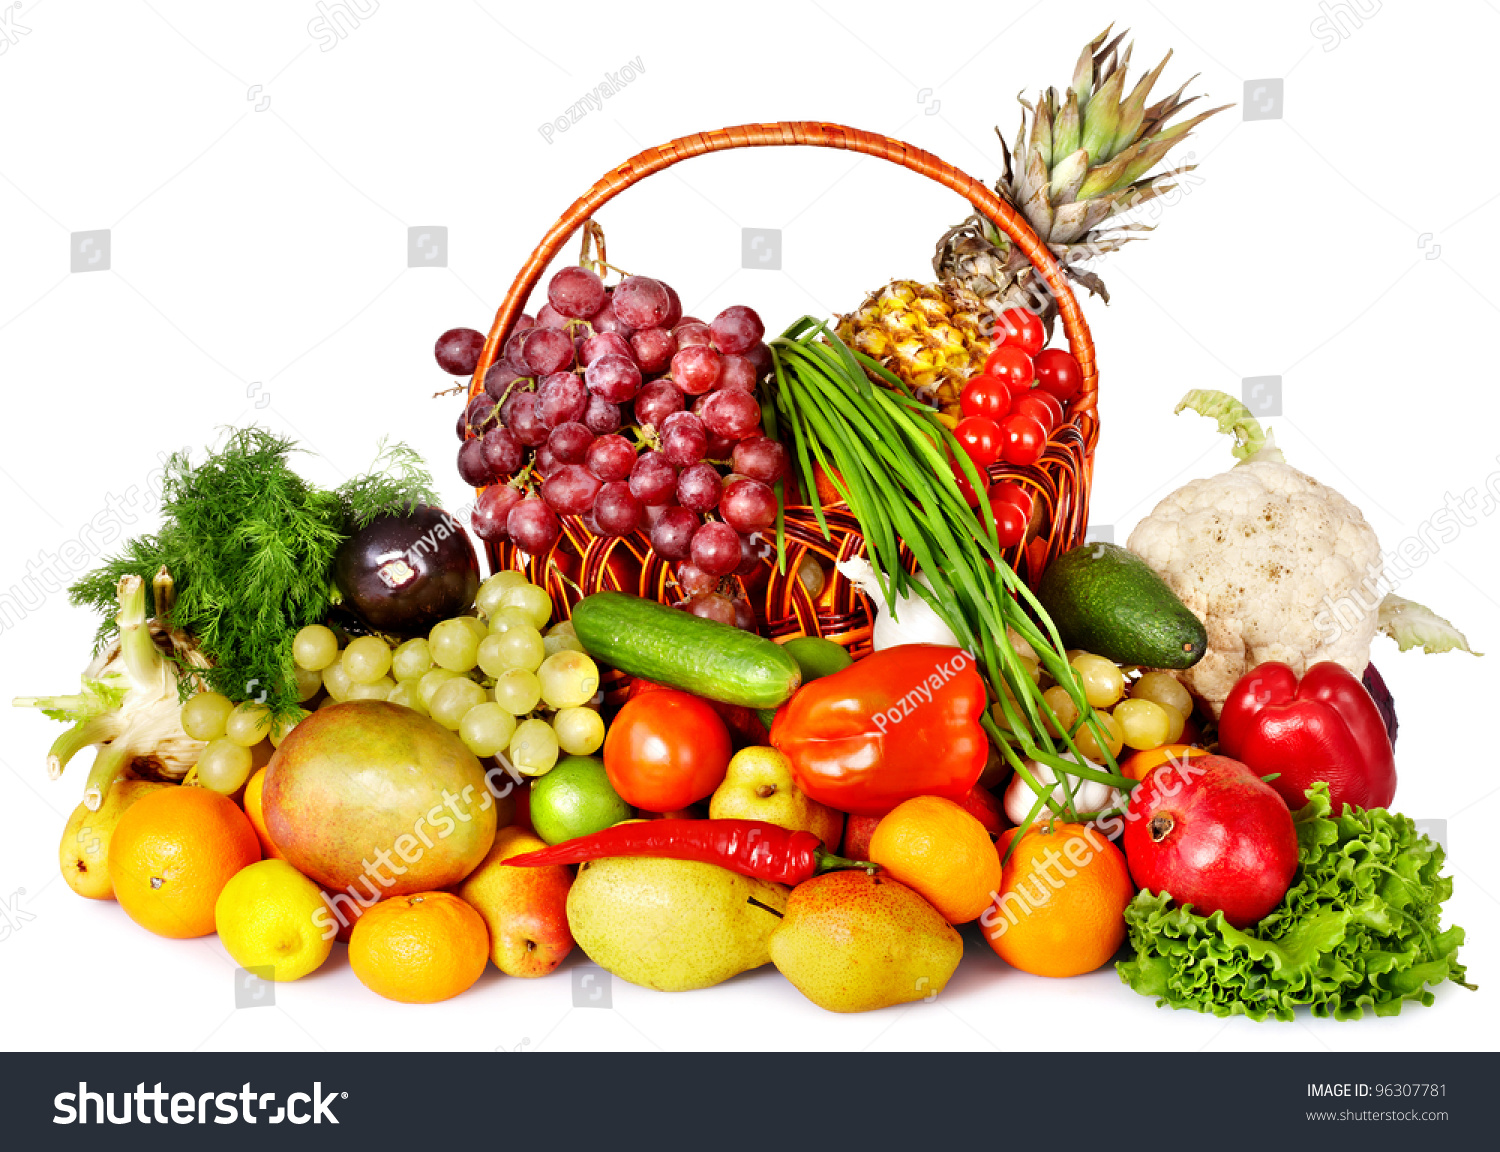 Fruit Vegetable Basket Isolated Stock Photo 96307781 ...